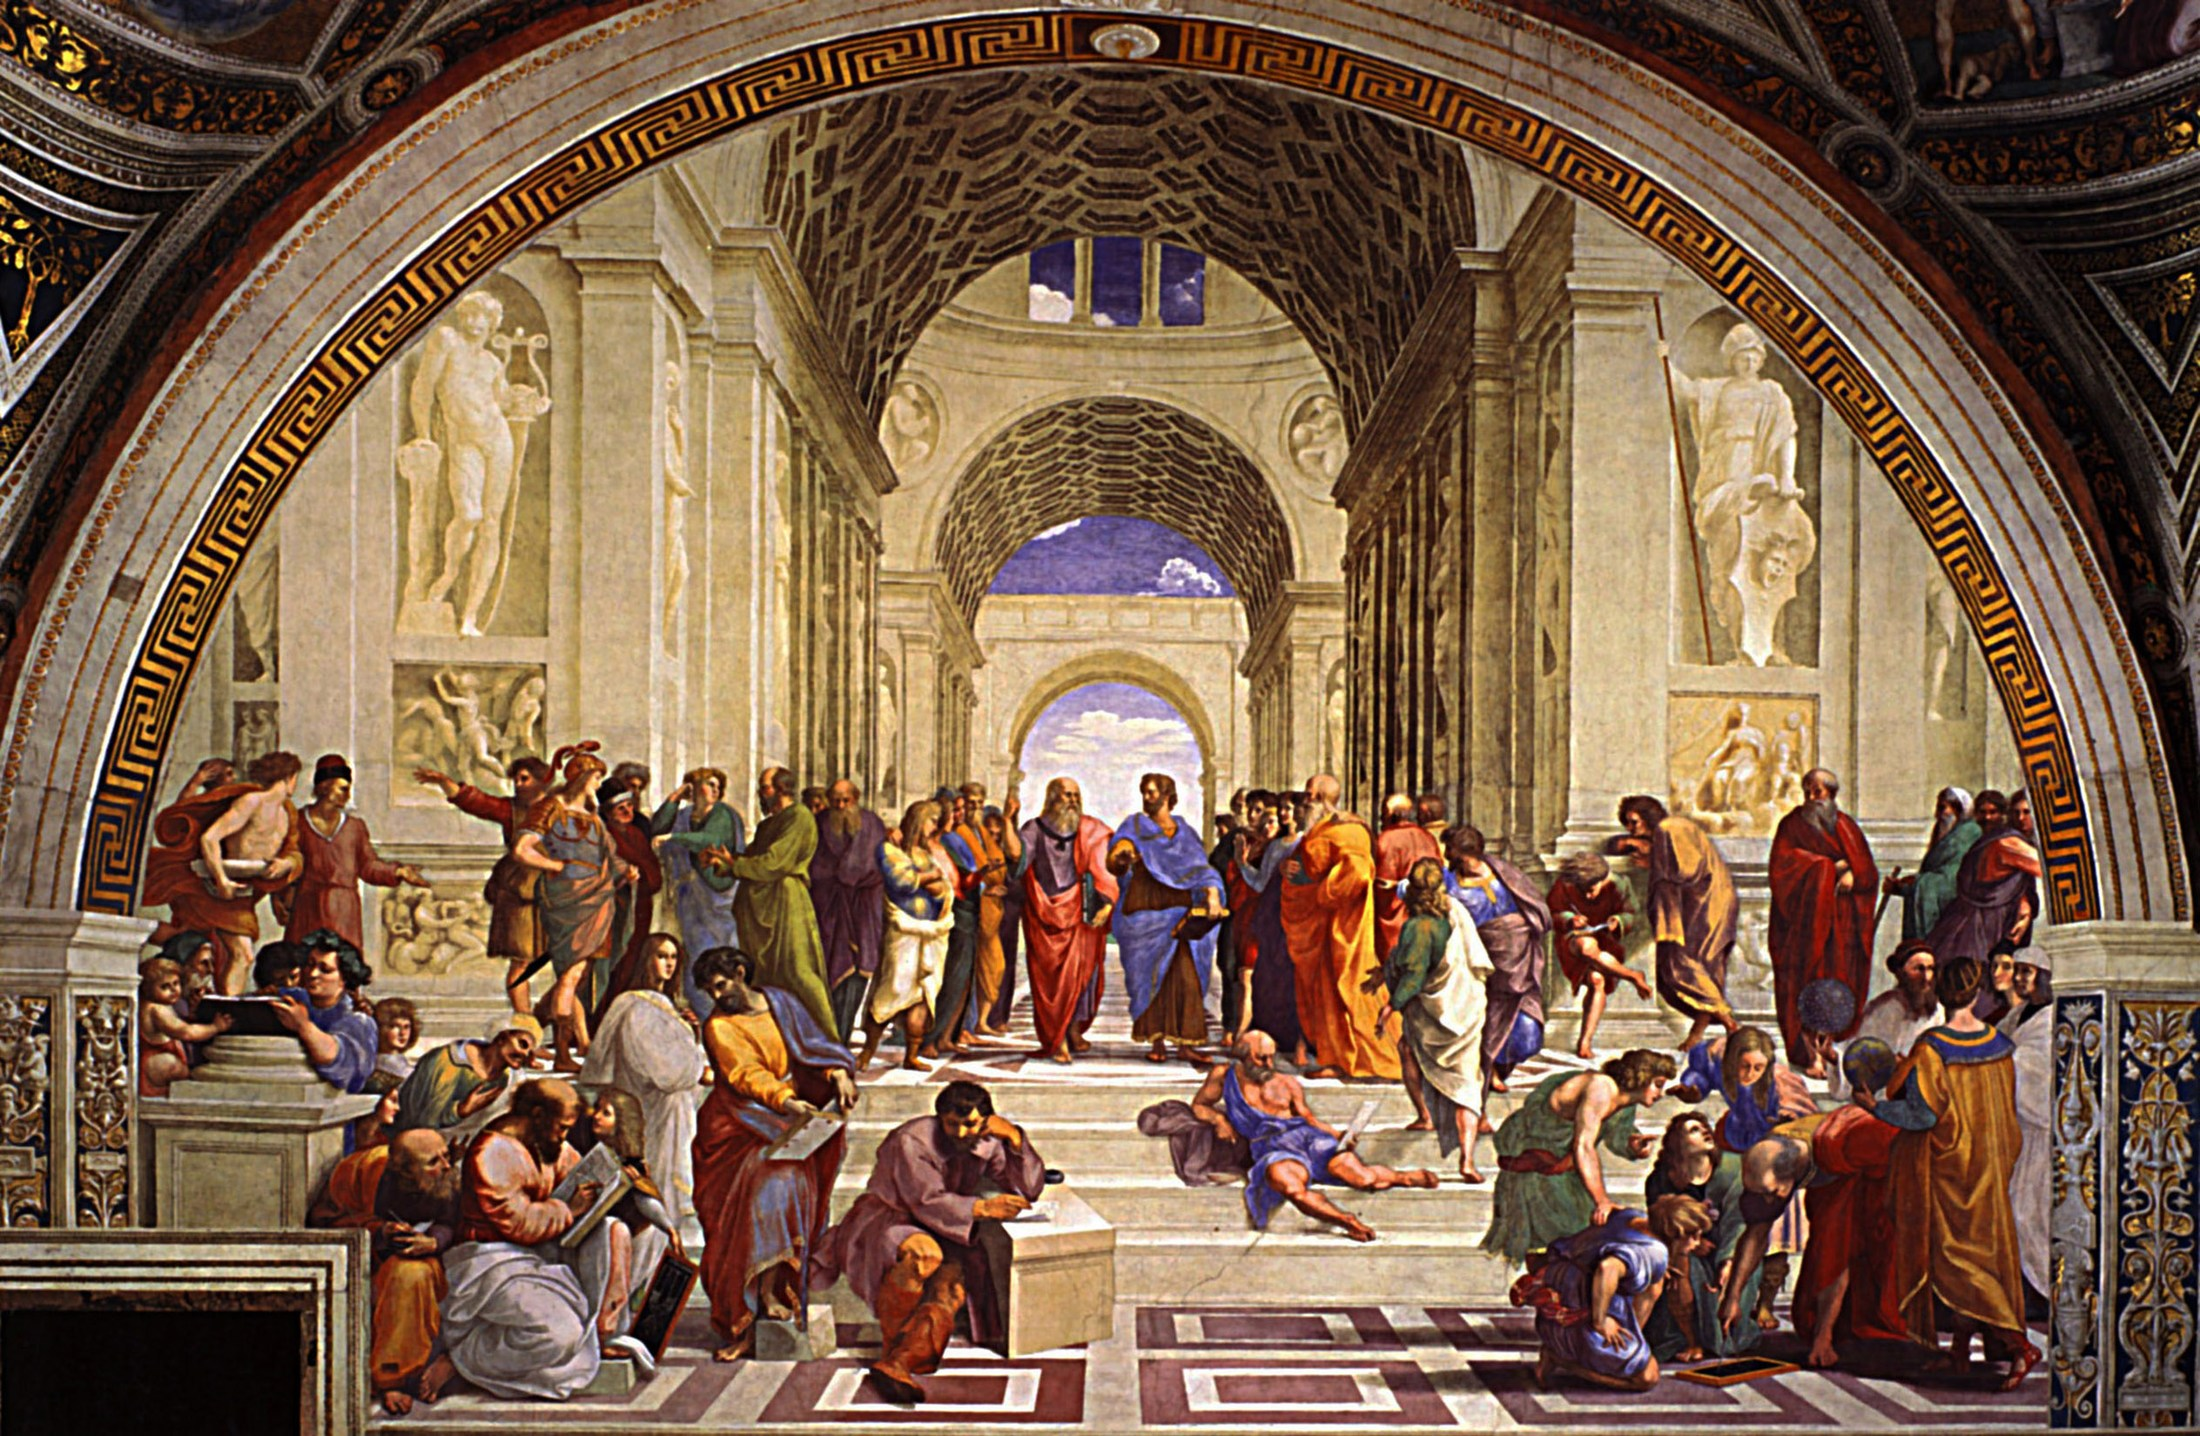 'The School of Athens' painting by Raphael